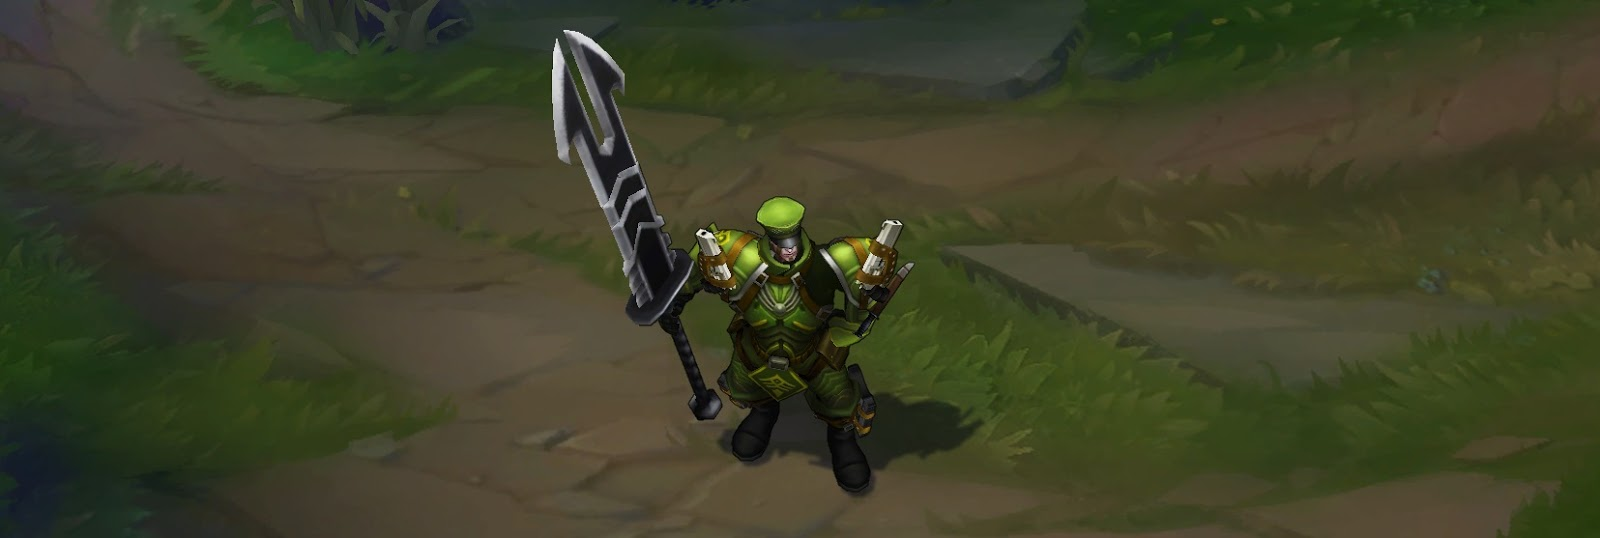 Surrender at 20: Champion and Skin - 64.0KB